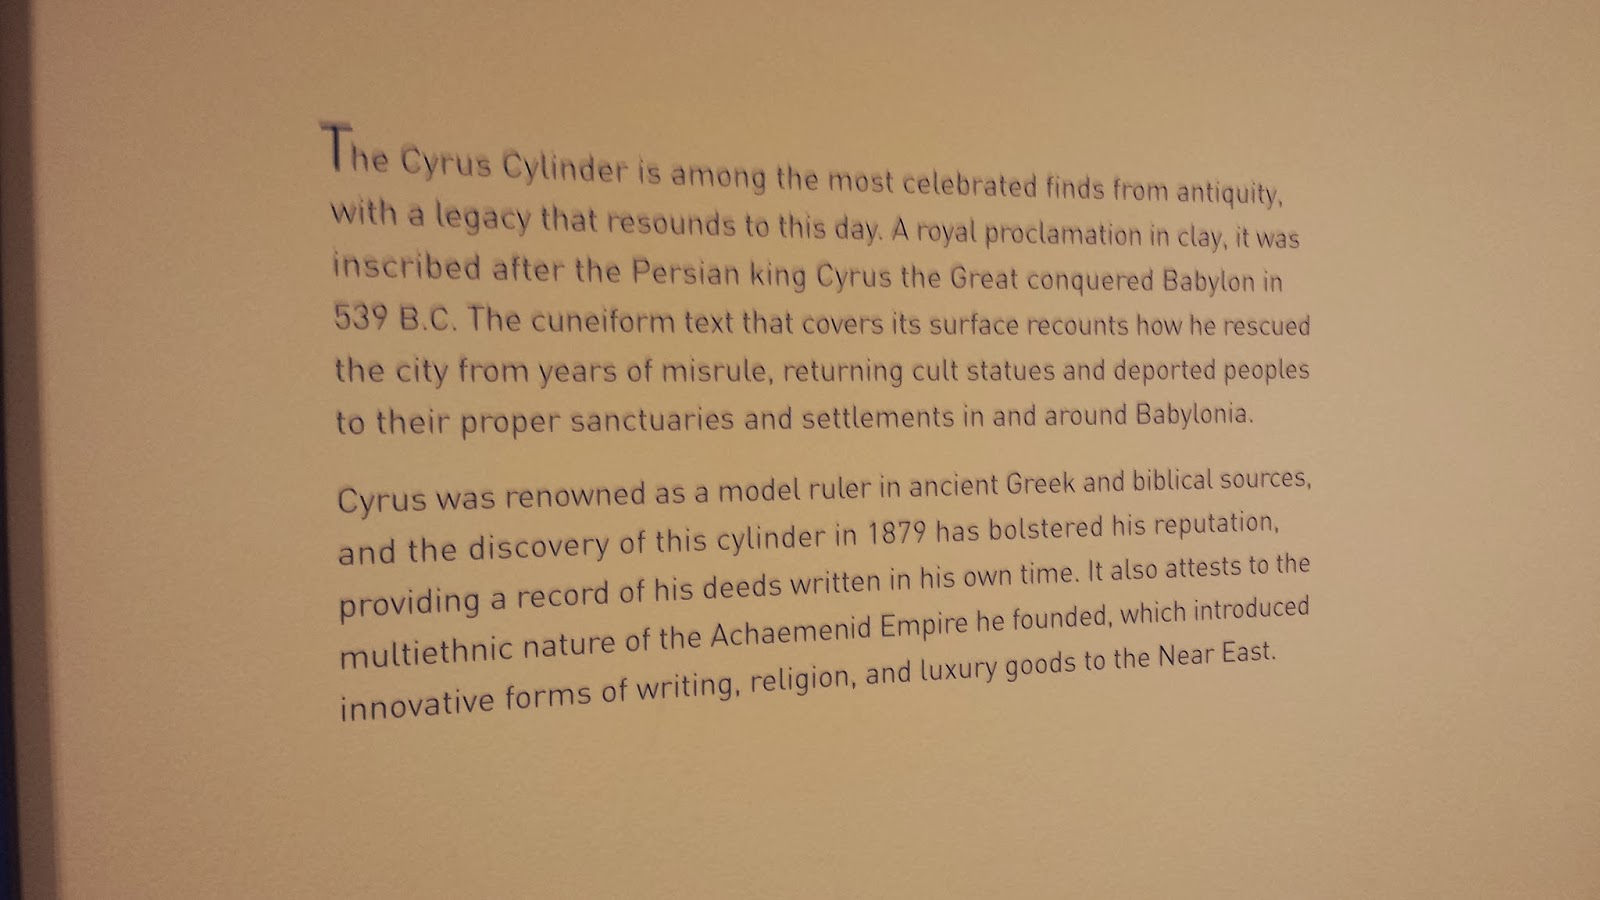 Random thoughts the cyrus cylinder a symbol of freedom the cyrus cylinder a symbol of freedom buycottarizona